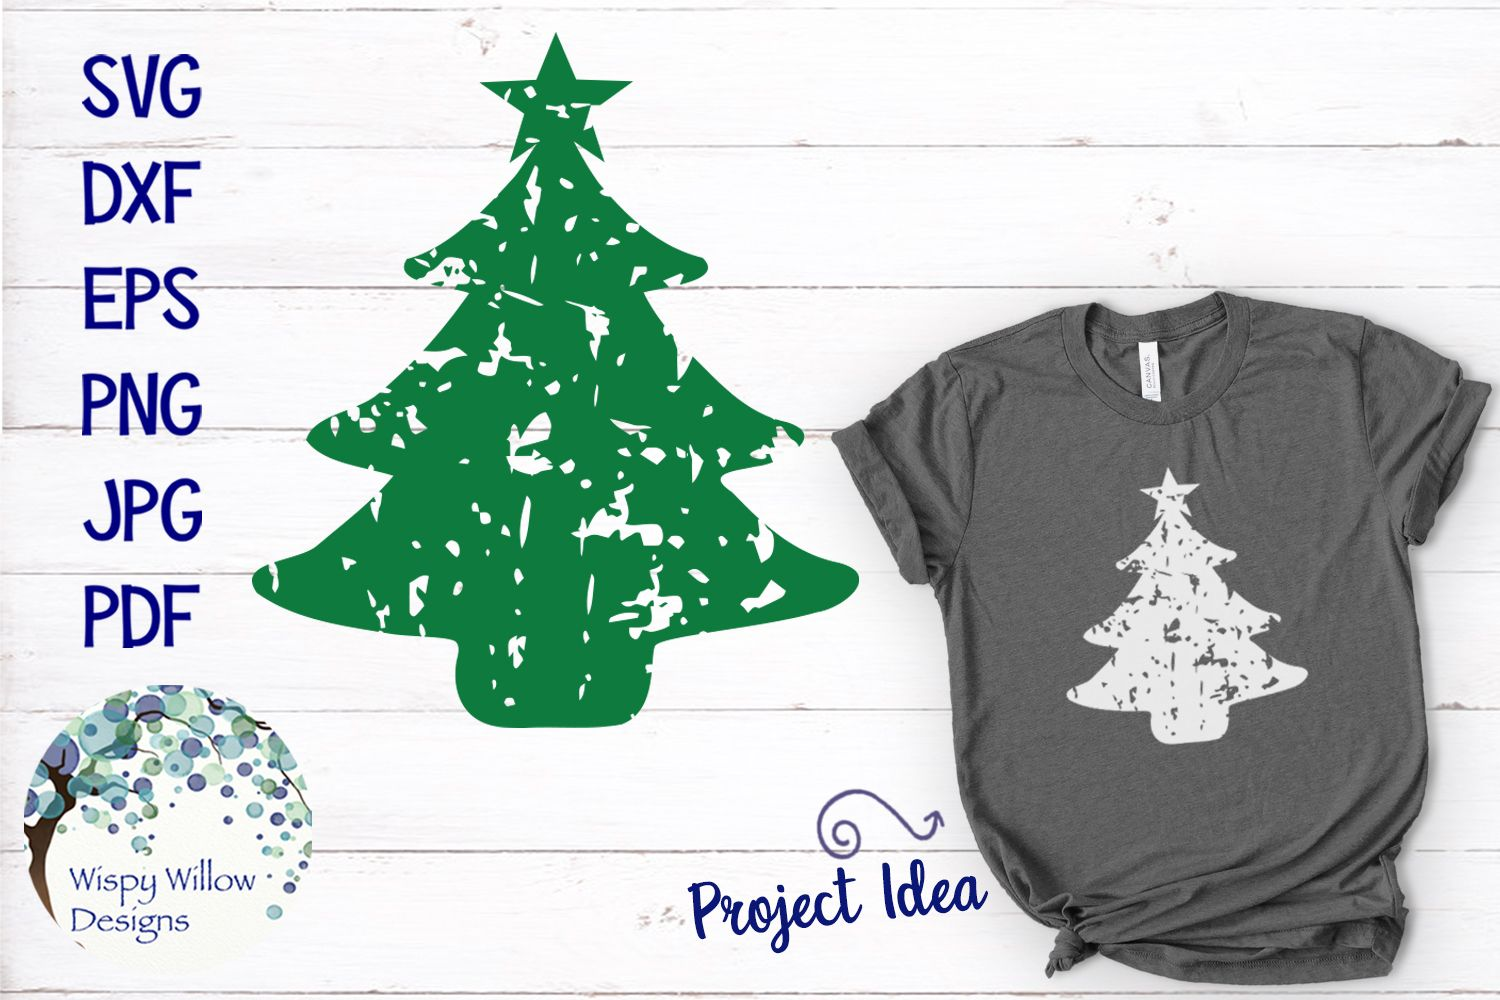 14b85af55c9f Distressed Grunge Christmas Tree SVG - SoFontsy -Commercial Use Christmas  Tree SVG  affiliate